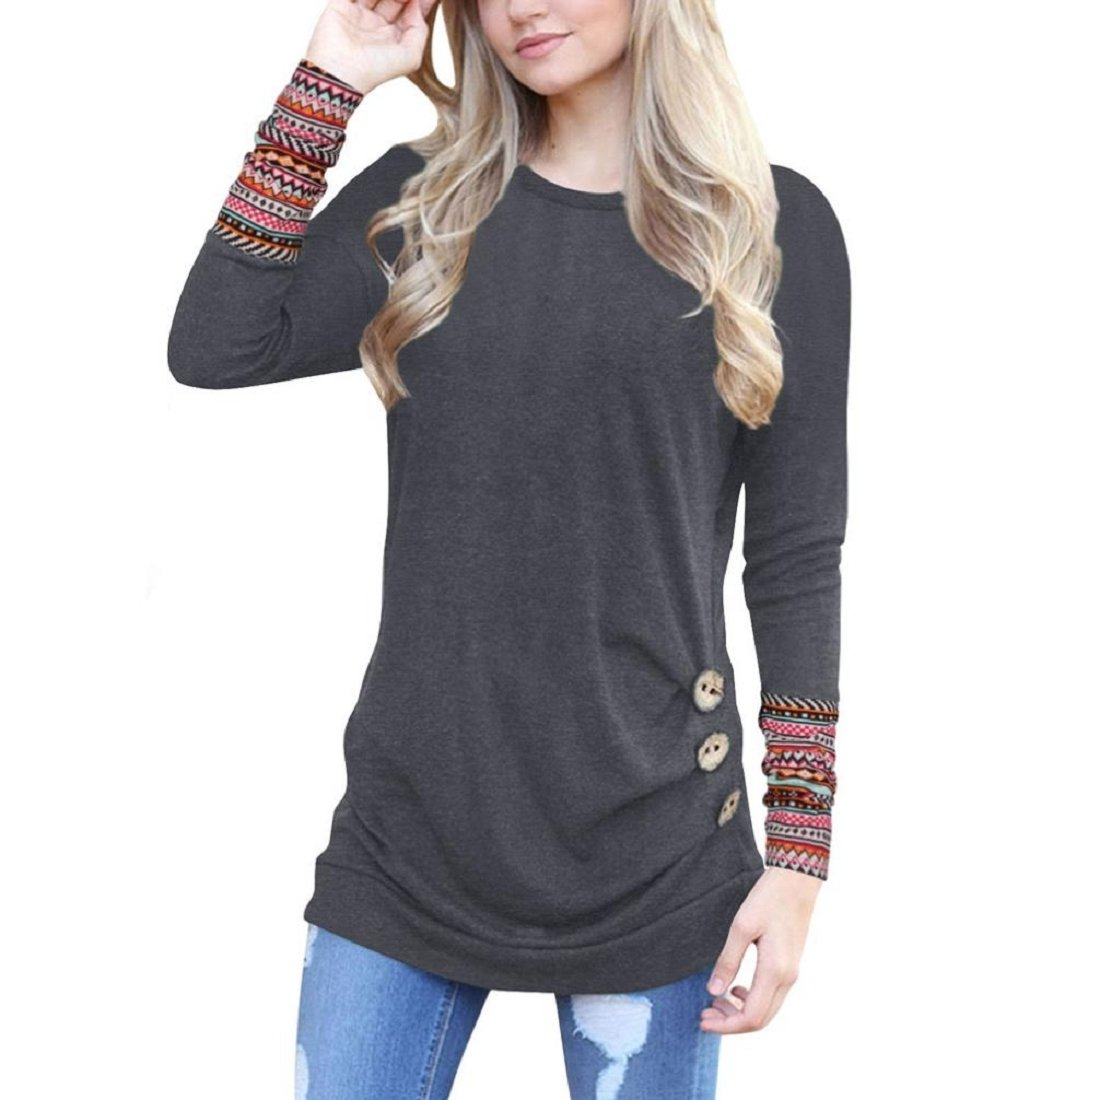 GONKOMA Hot Sale Women Autumn Blouse Long Sleeve Trim T-Shirt Tops Casual Round Neck Patchwork Tunic Blouse Deep Gray) XWJ520